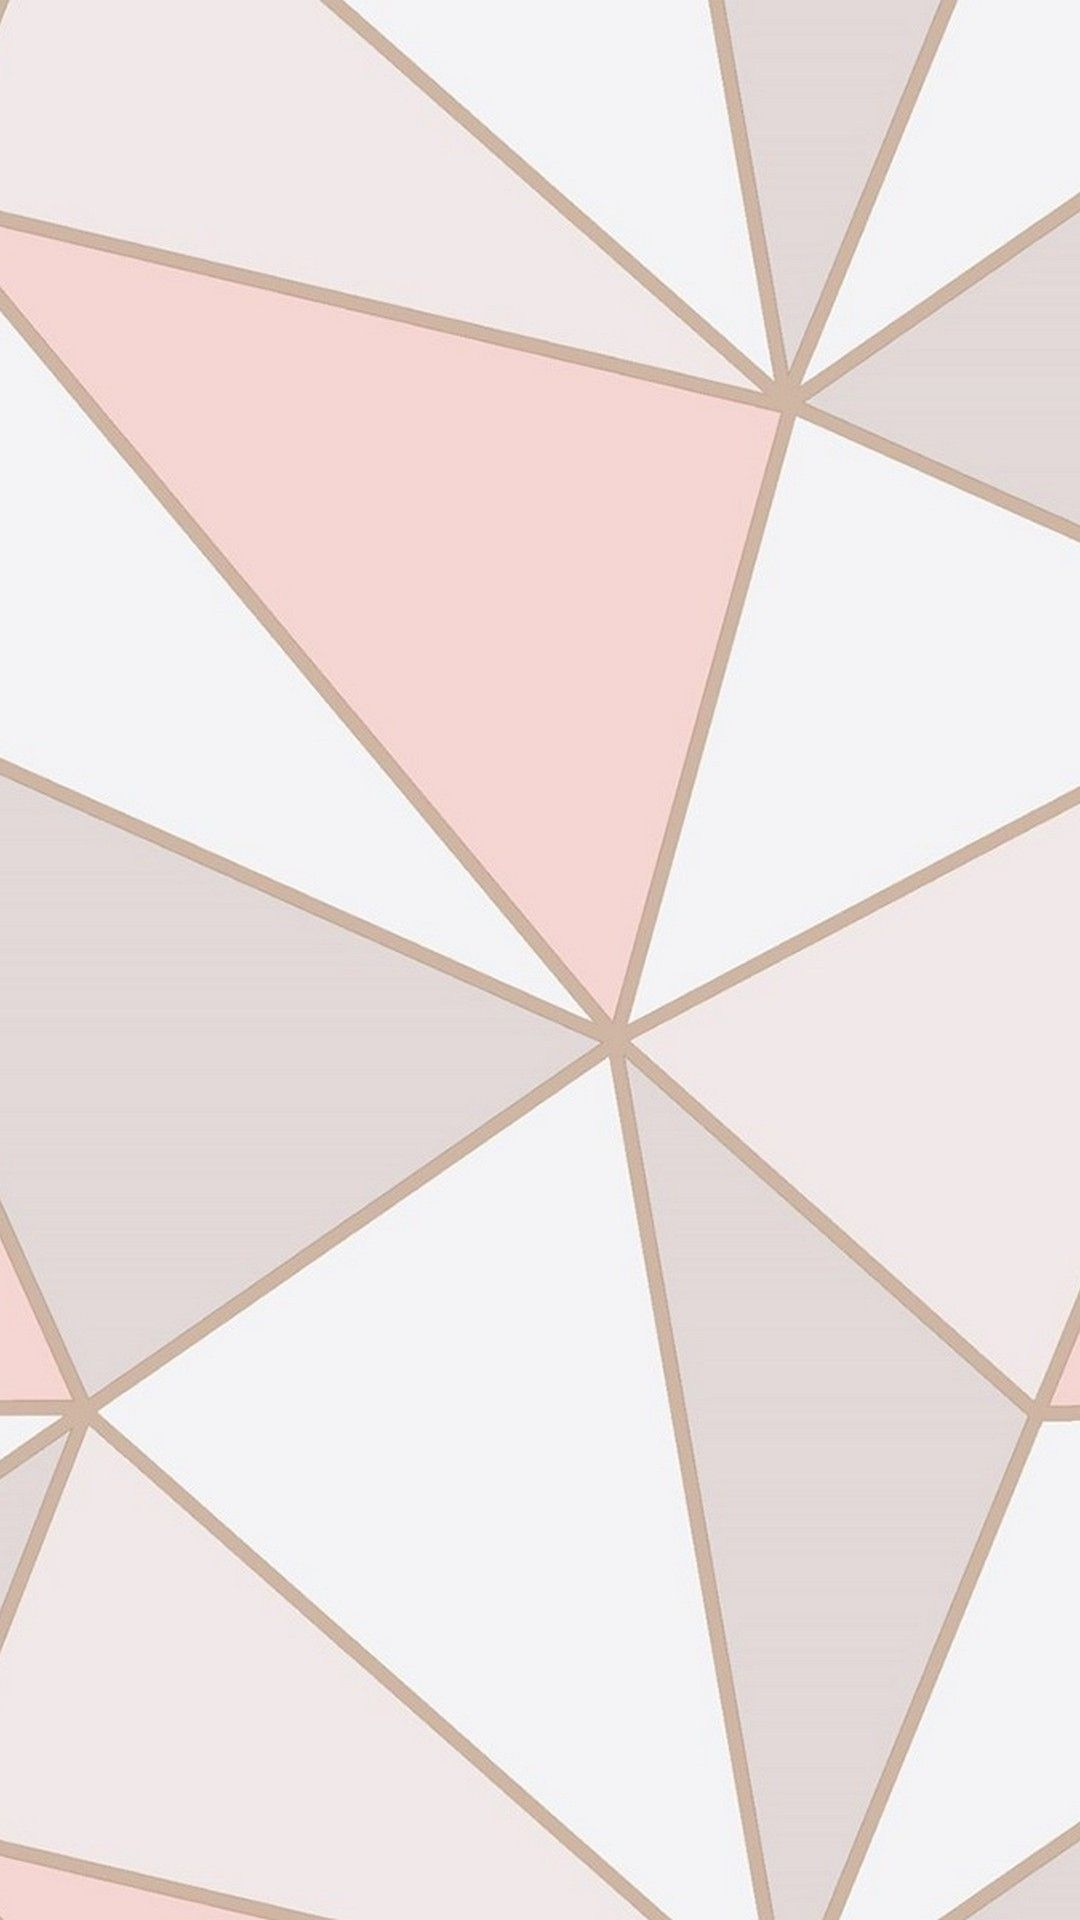 Rose Gold Marble Wallpapers Wallpaper Cave